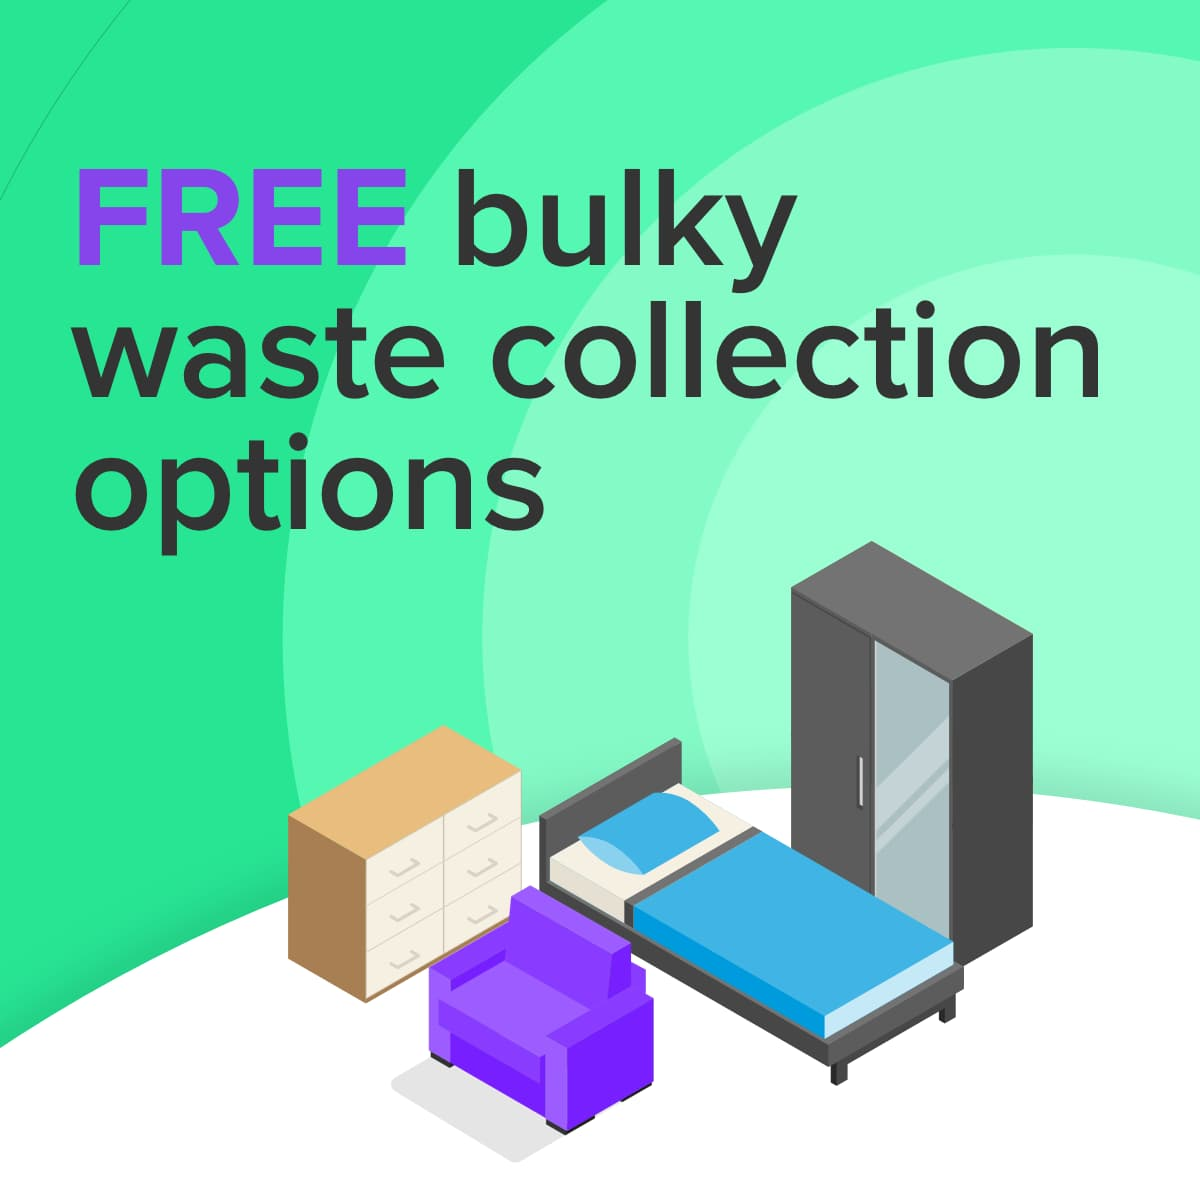 Free Bulky Waste Collection Options